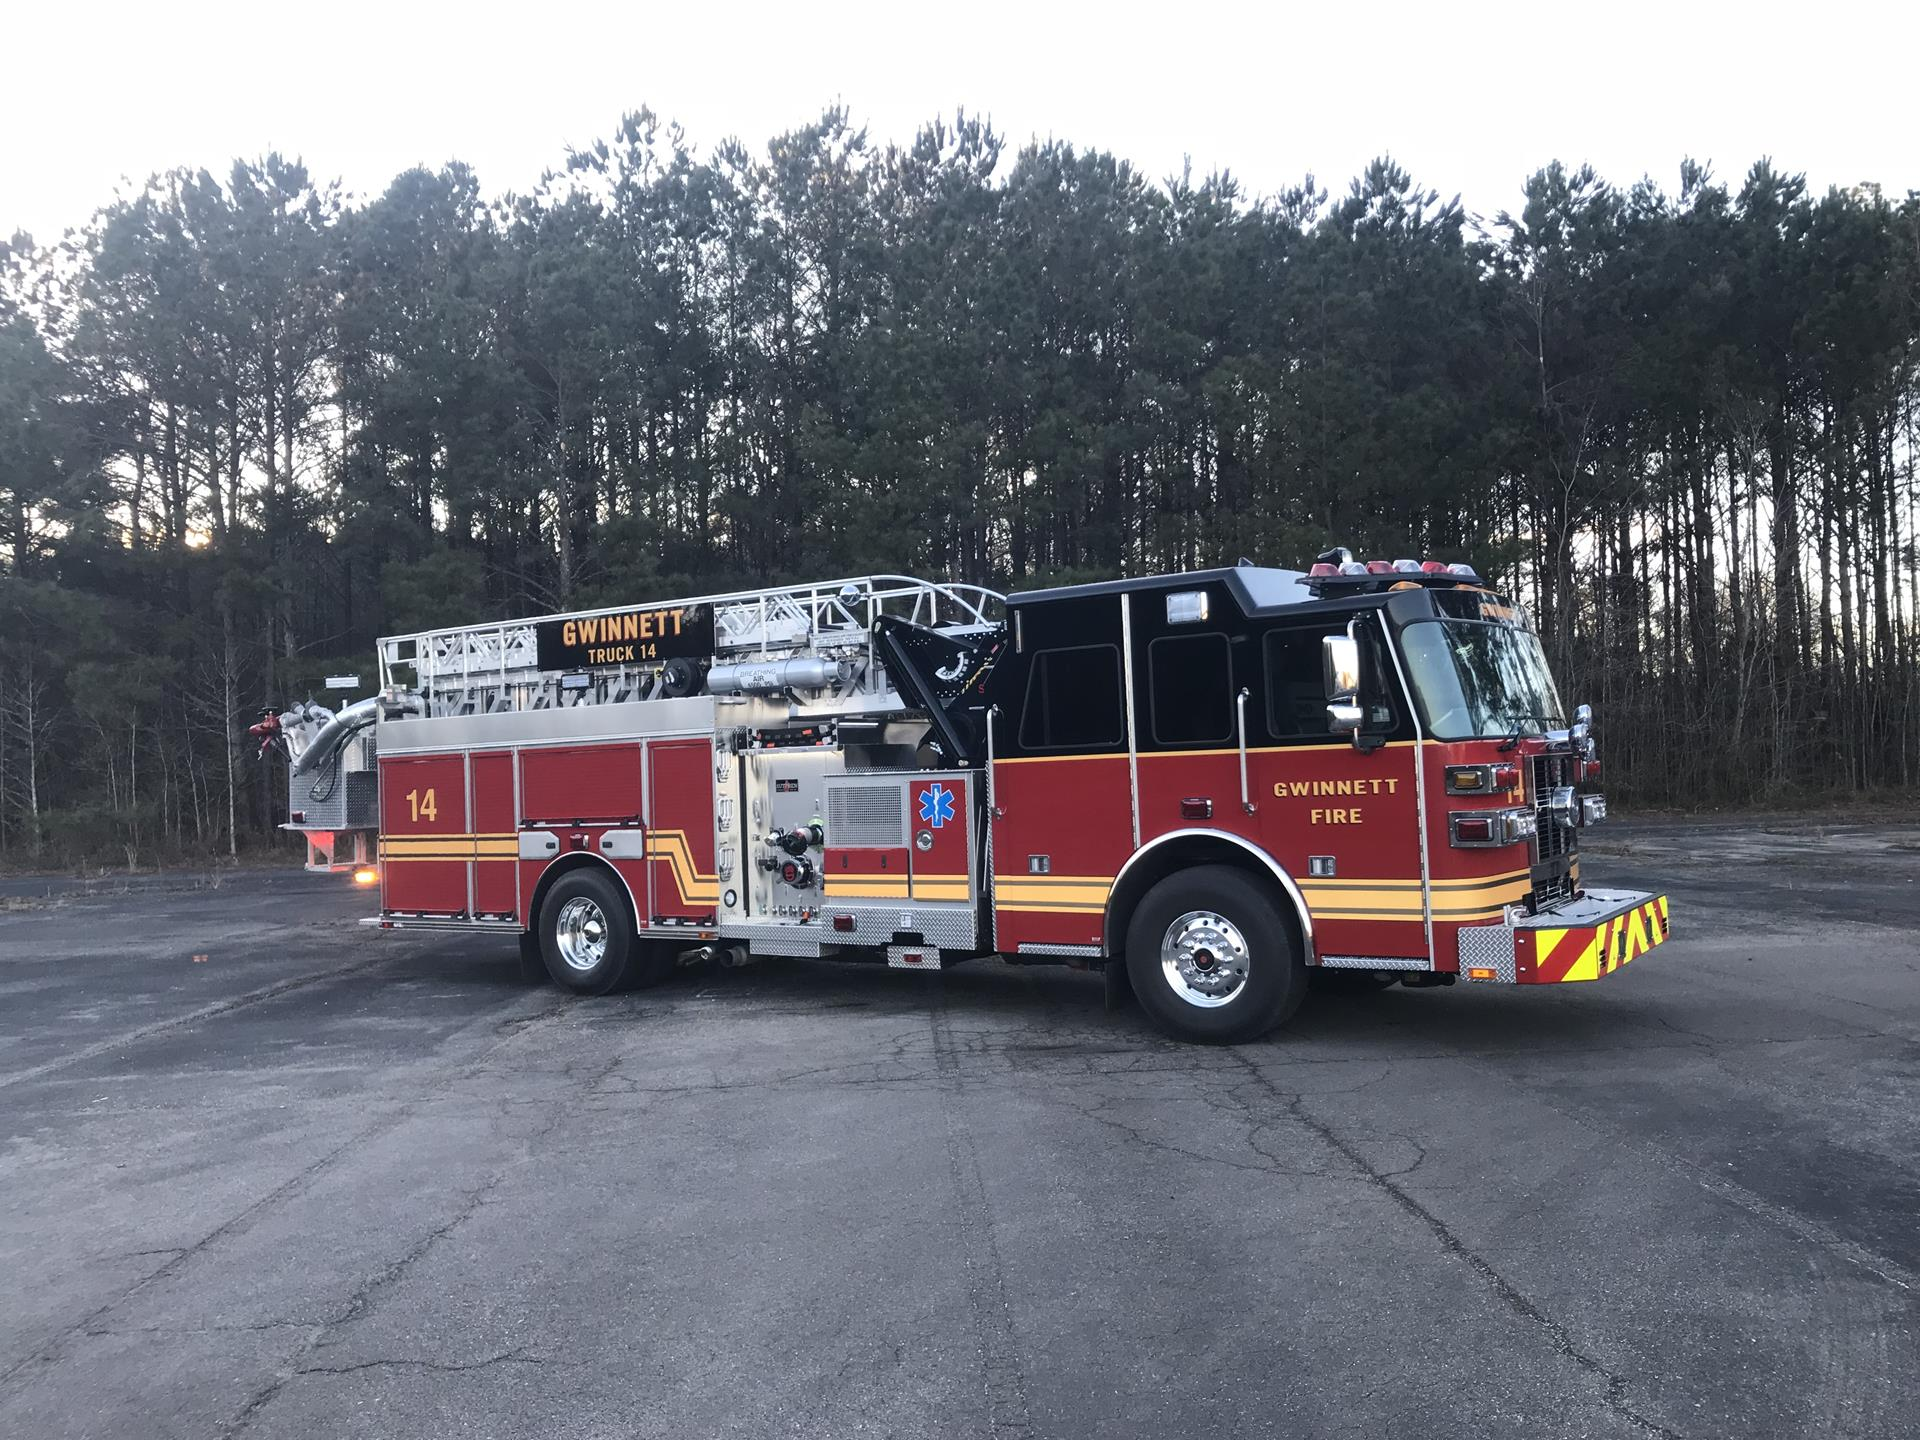 Gwinnett County Fire/Emergency Services, GA